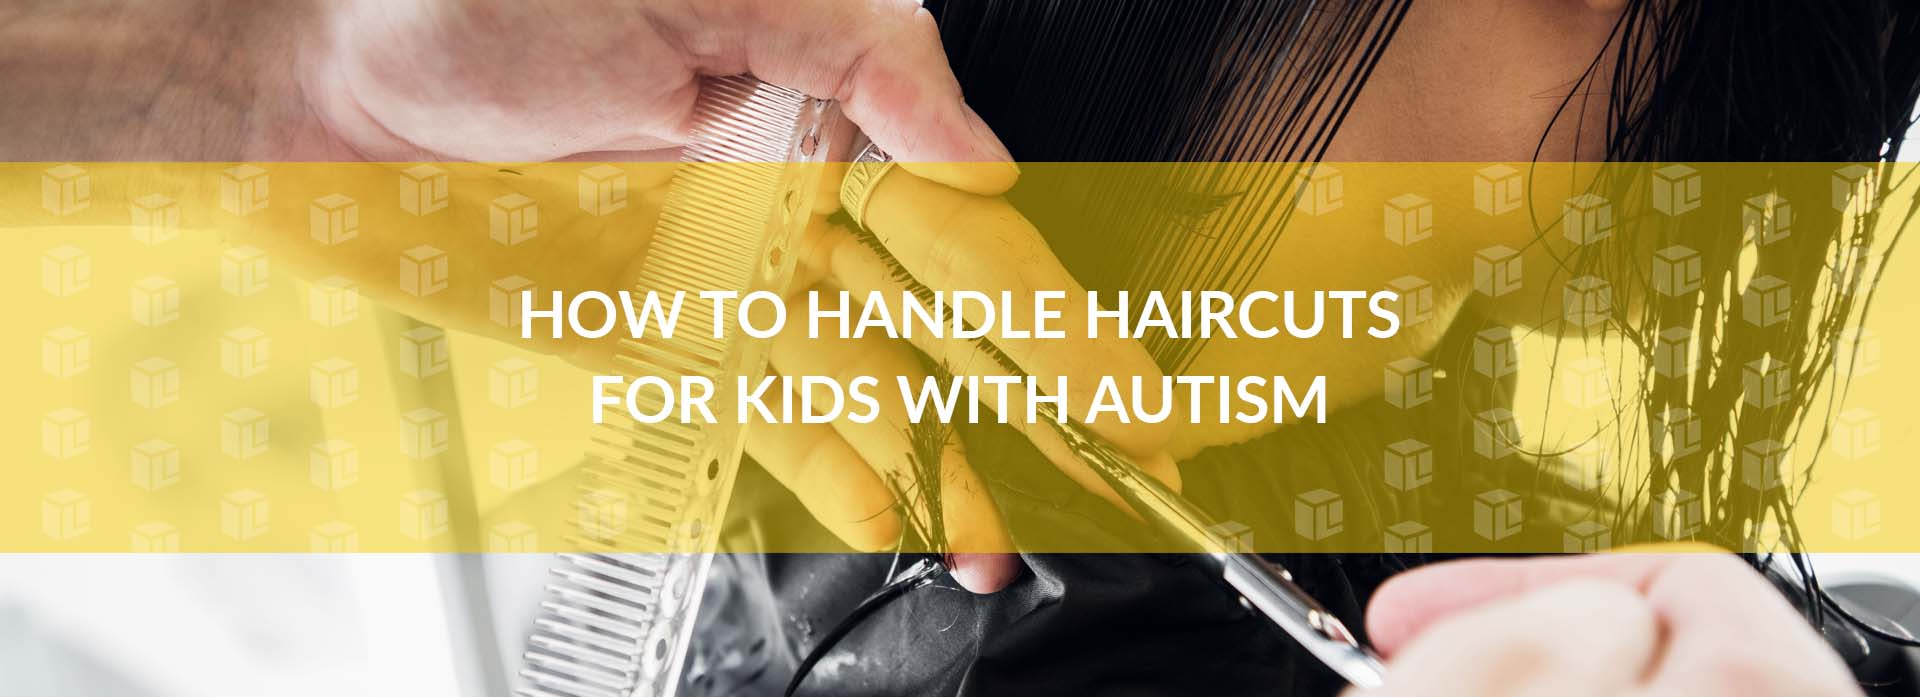 How To Handle Haircuts For Kids With Autism